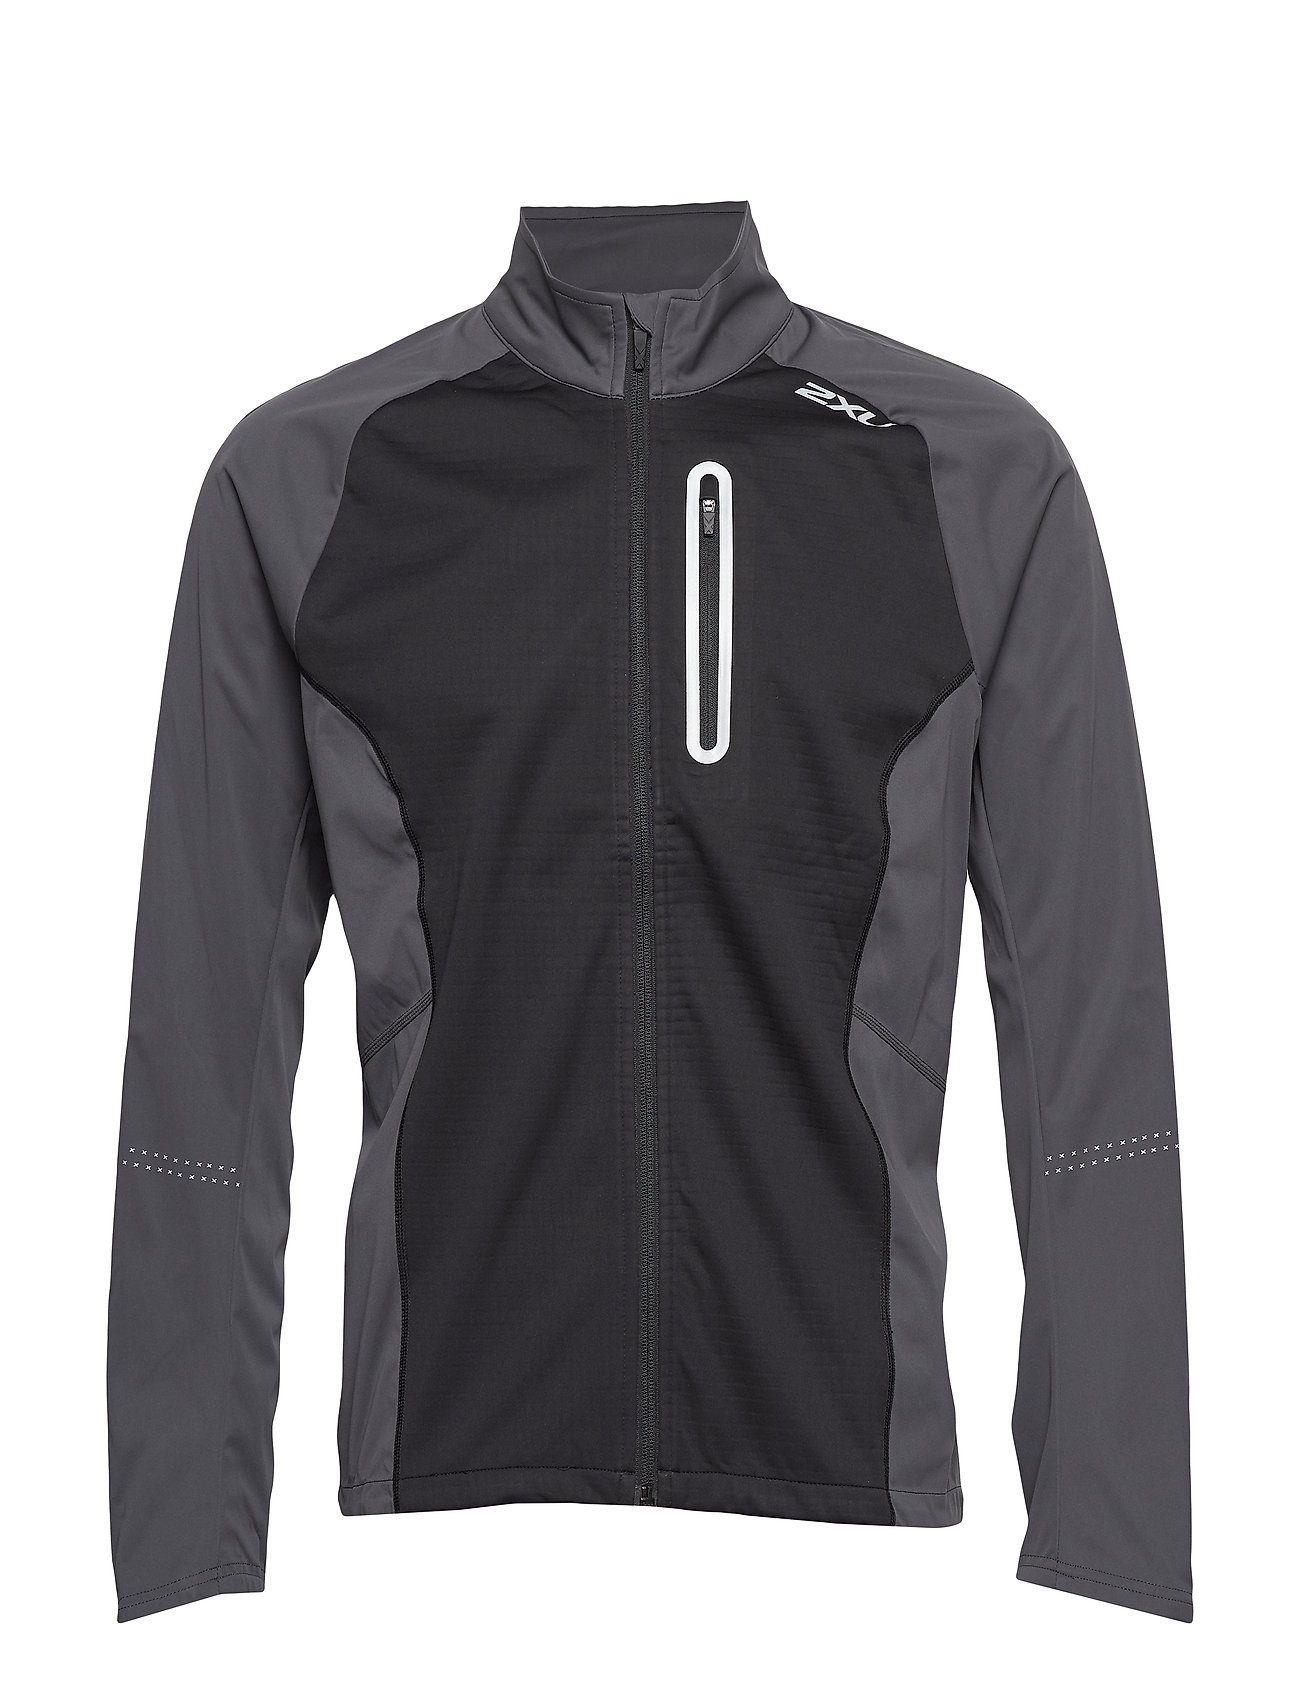 2XU Wind Defence Membrane Jacket - CHARCOAL/BLACK